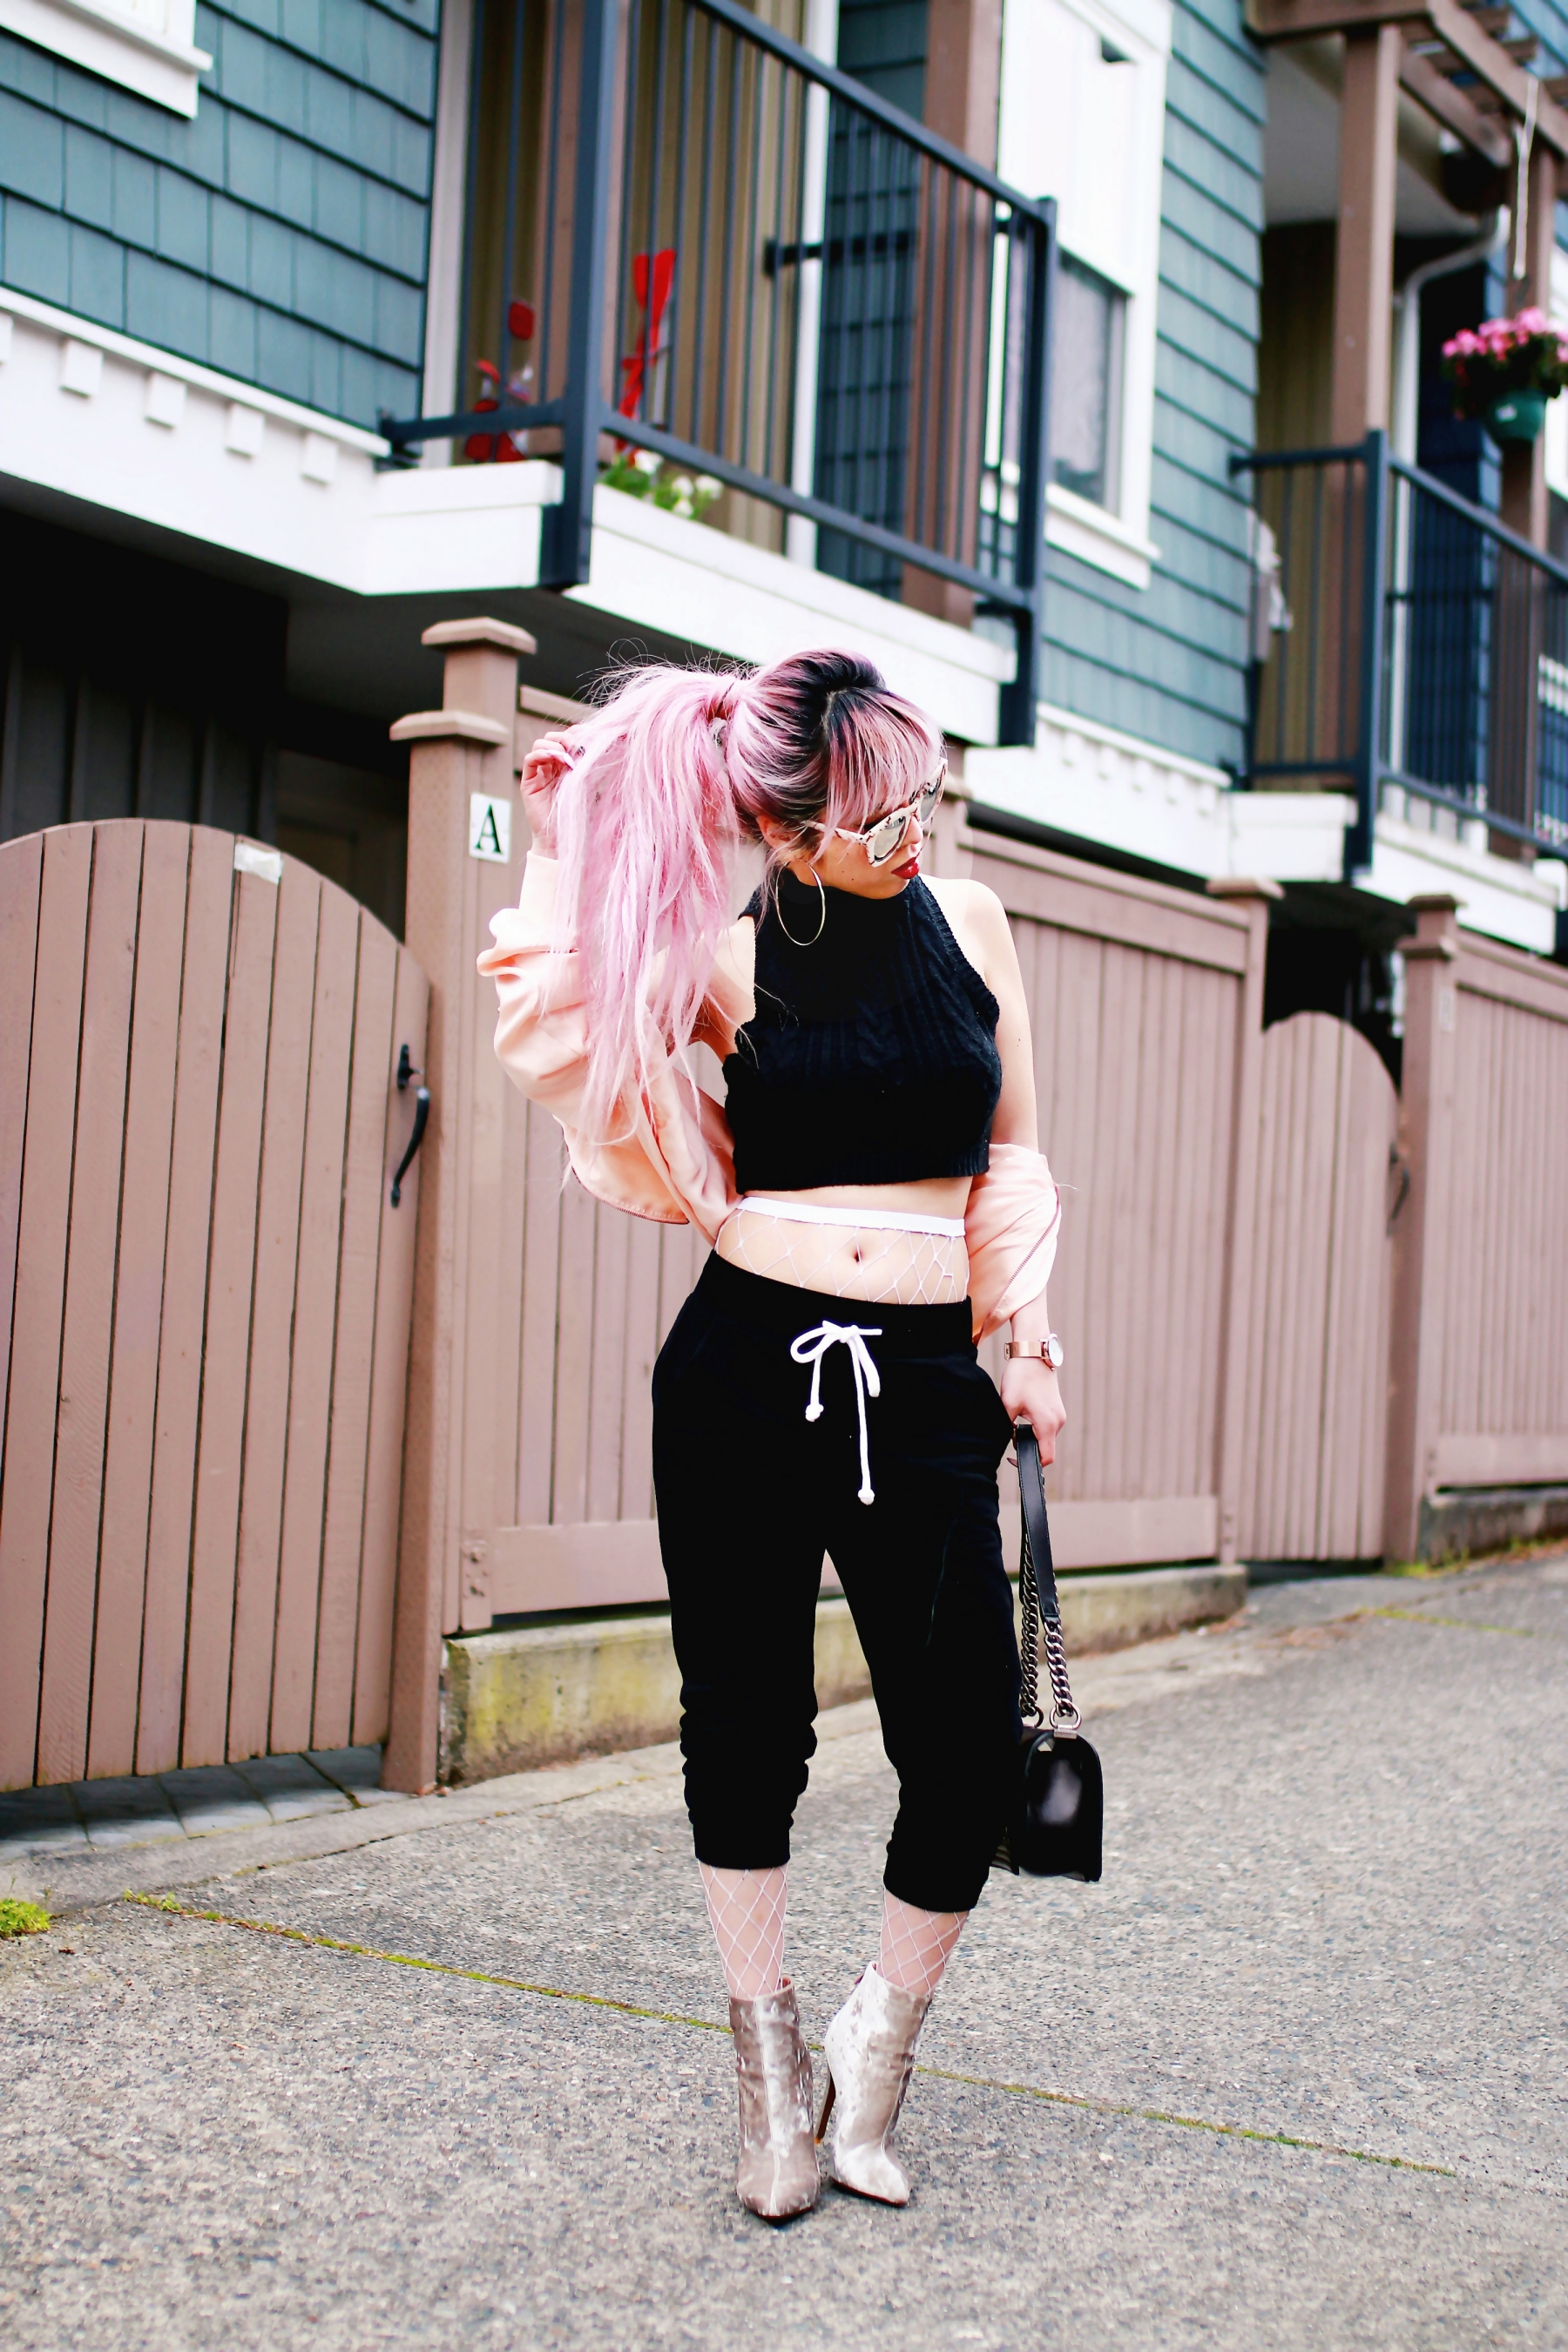 Zara Blush Silk Bomber Jacket_Missguided mock neck Crop top_ASOS fishnet tights_H&M sweatpants_Public Desire Boots_Chanel Bag_L'Oreal Red Lipstick_Free People Mirrored Sunglasses_Aikas Love Closet_Seattle Fashion Style Blogger_Pink Hair 9